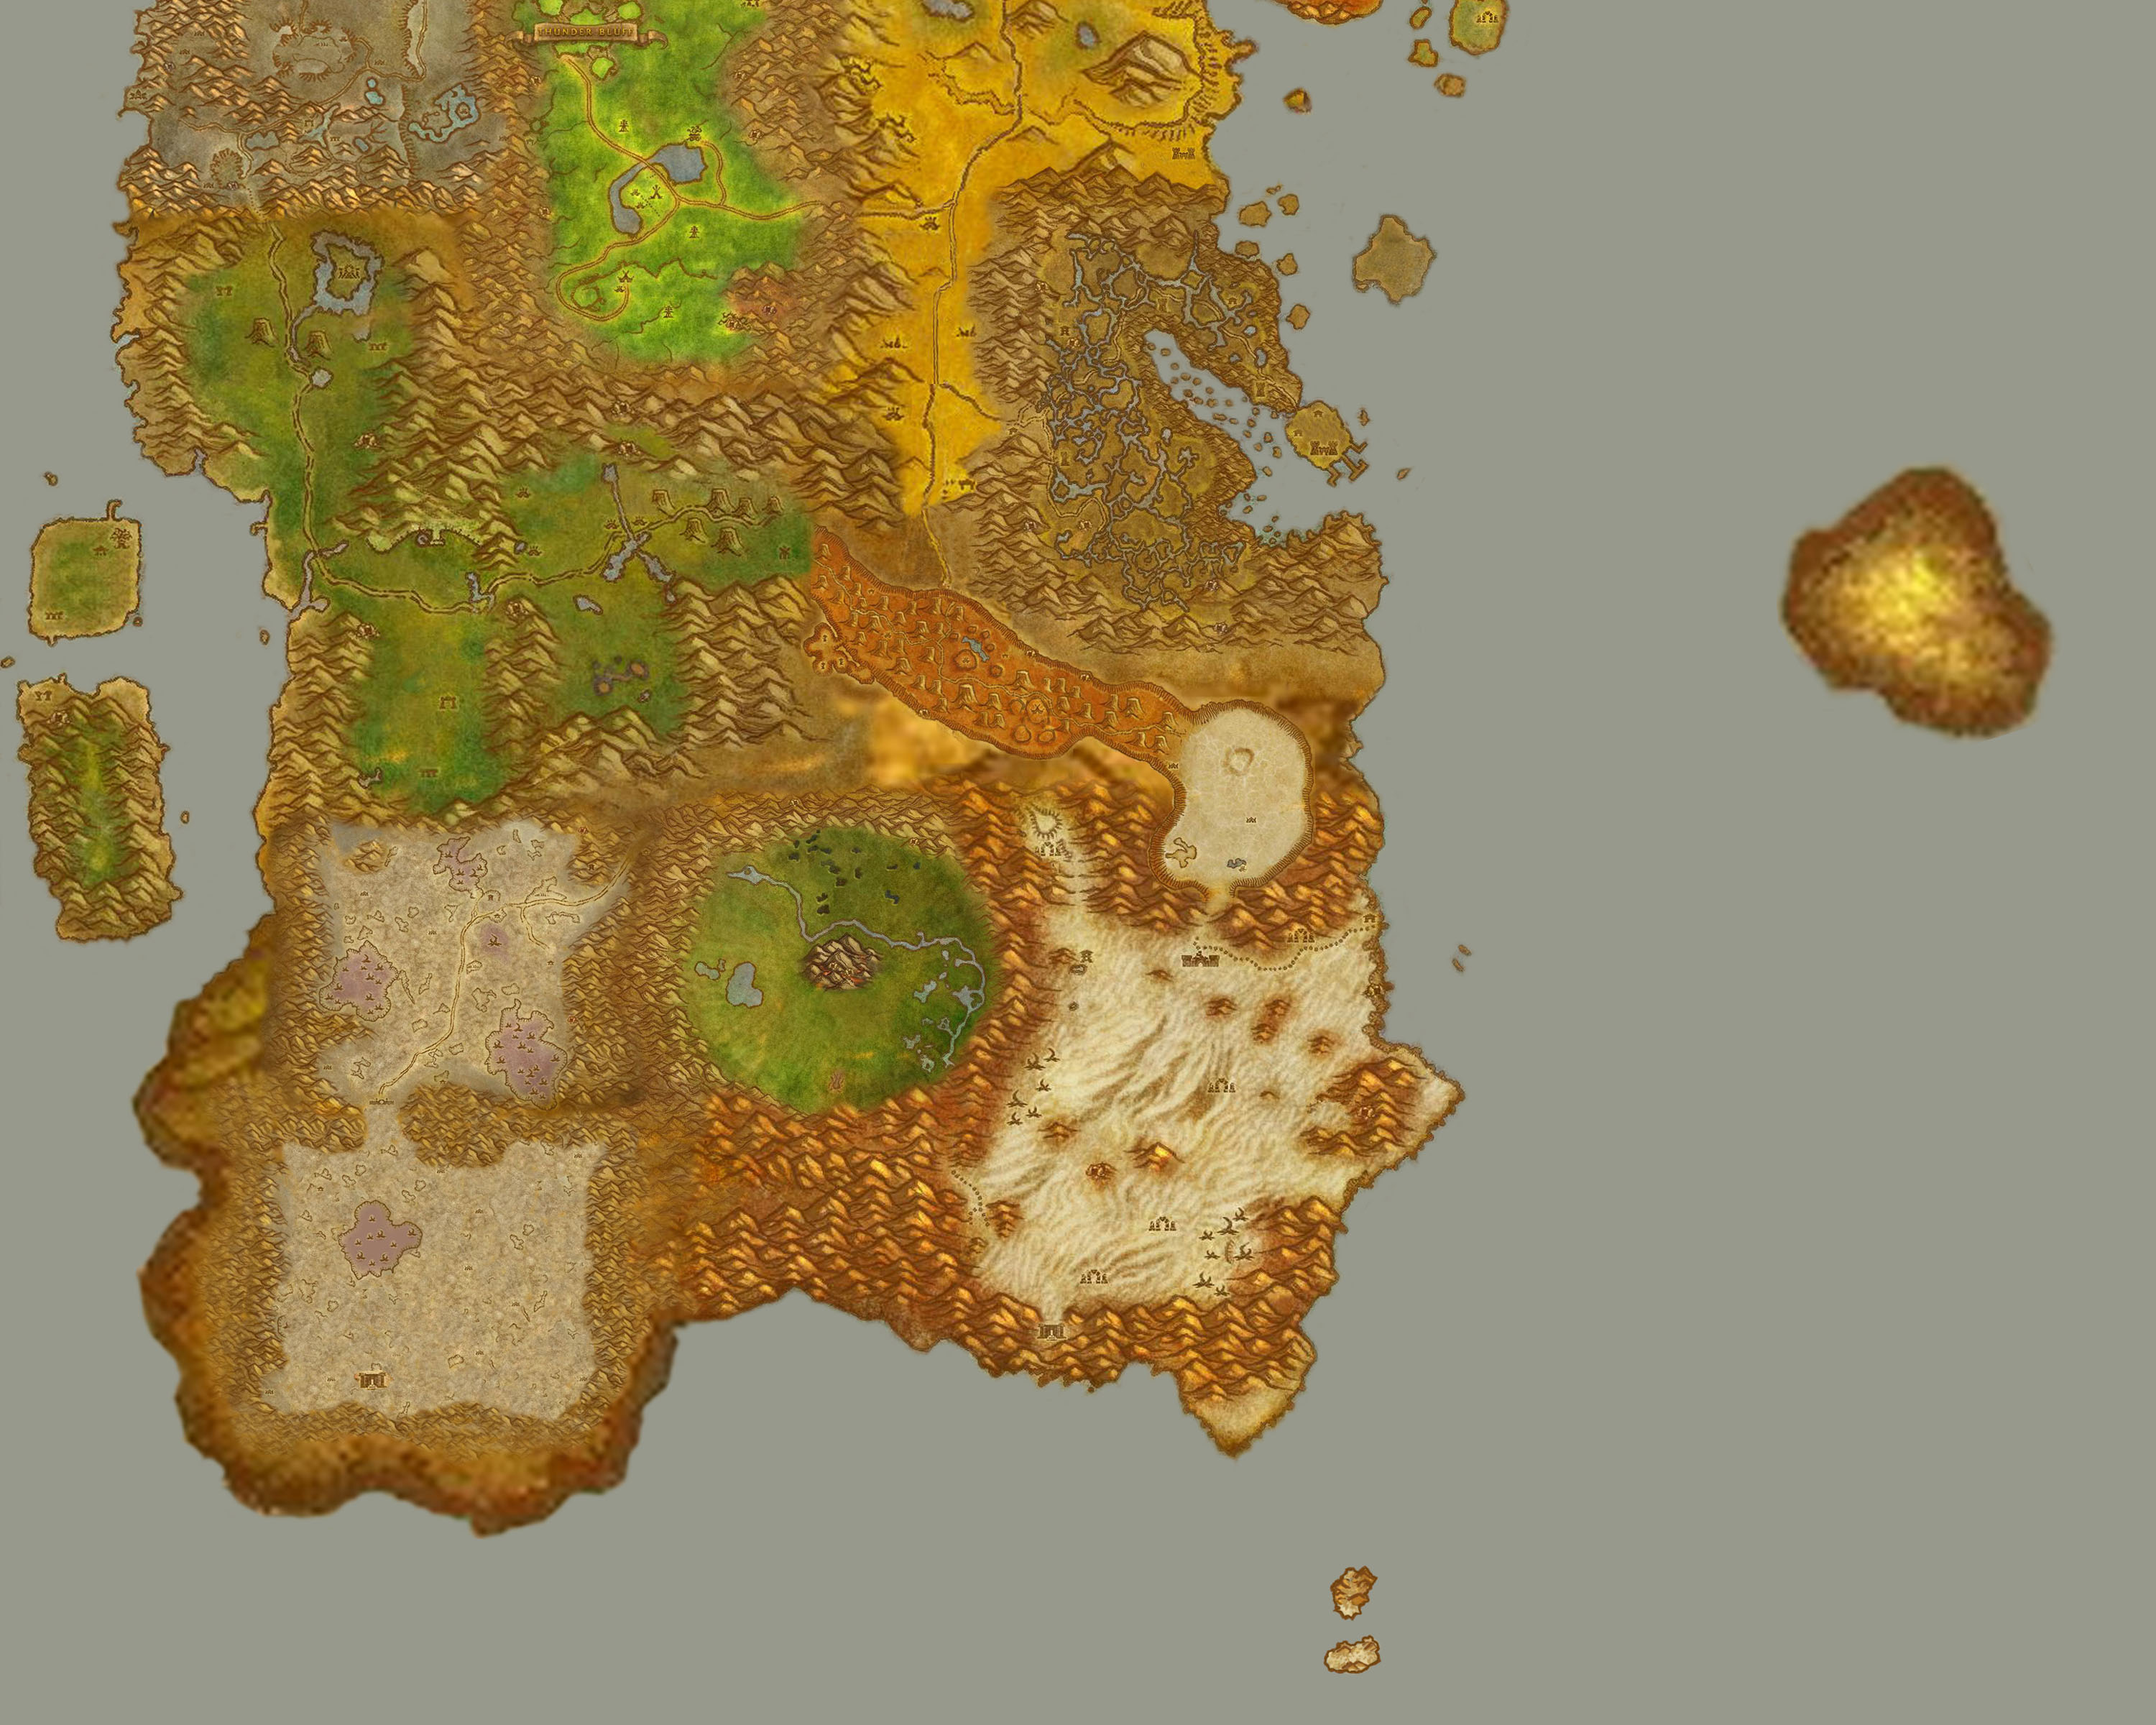 Greywolfs world of warcraft fan site travel kalimdor map no labels part c gumiabroncs Images